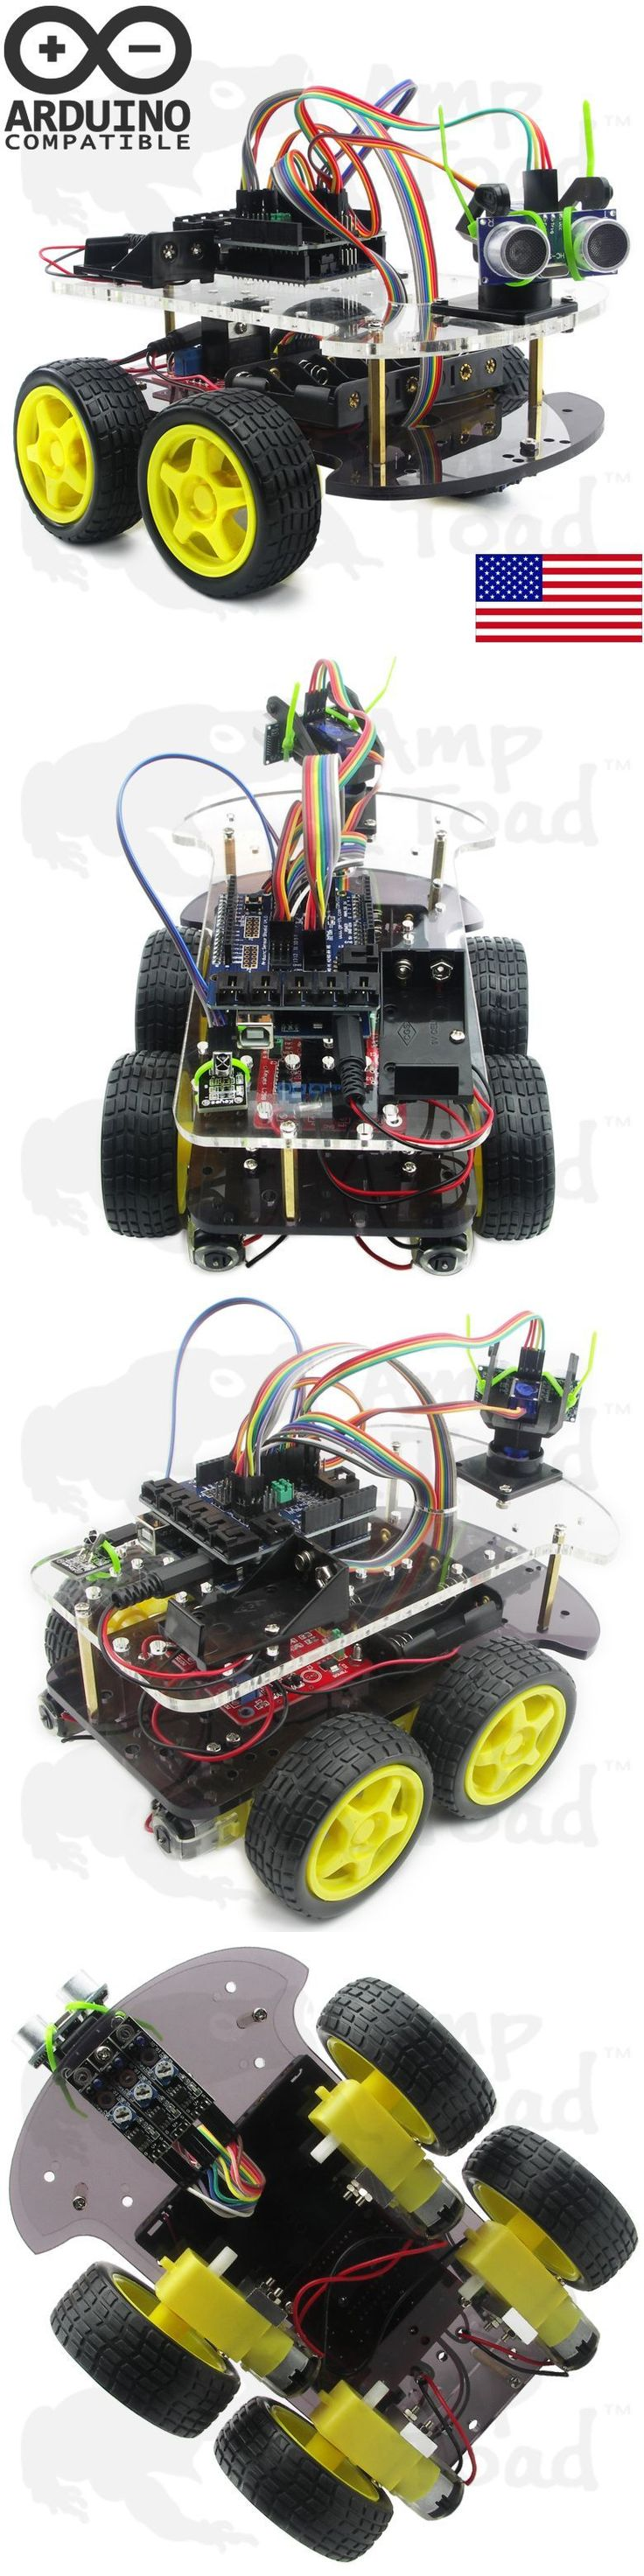 Remote-Controlled Toys 84912: 4Wd Arduino Smart Car Robot Learning Starter Kit - Smart Programmable Robot Diy -> BUY IT NOW ONLY: $69.5 on eBay!